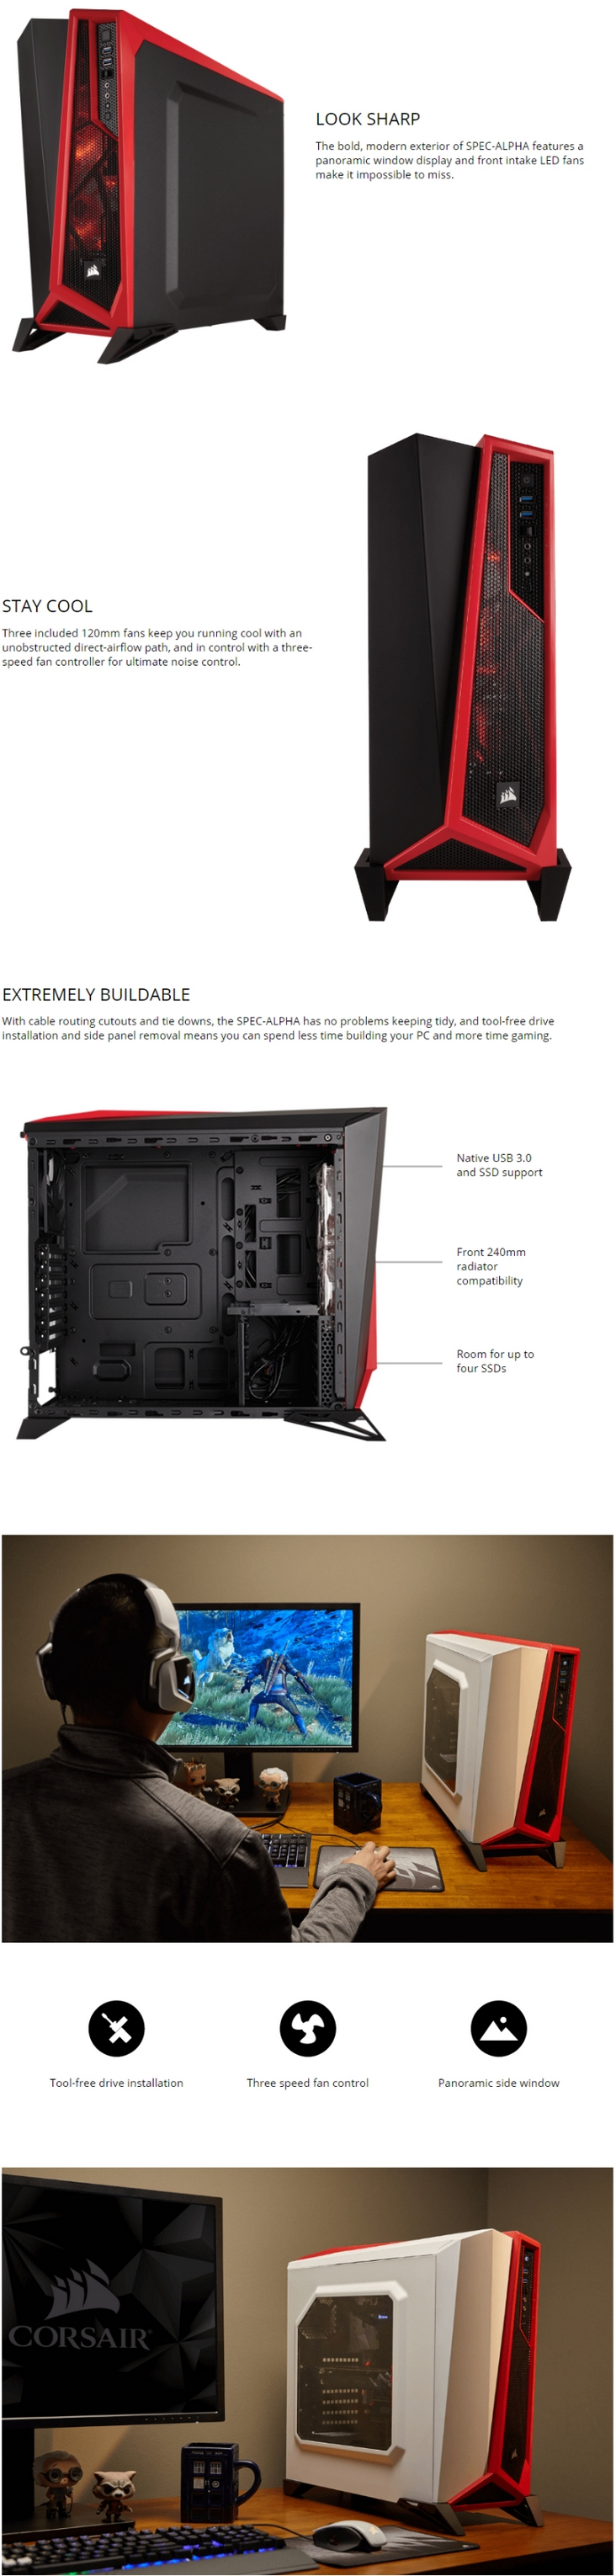 separation shoes 4e4b9 49dfa Corsair Carbide Series SPEC-ALPHA Black & Red Mid-Tower Gaming Case